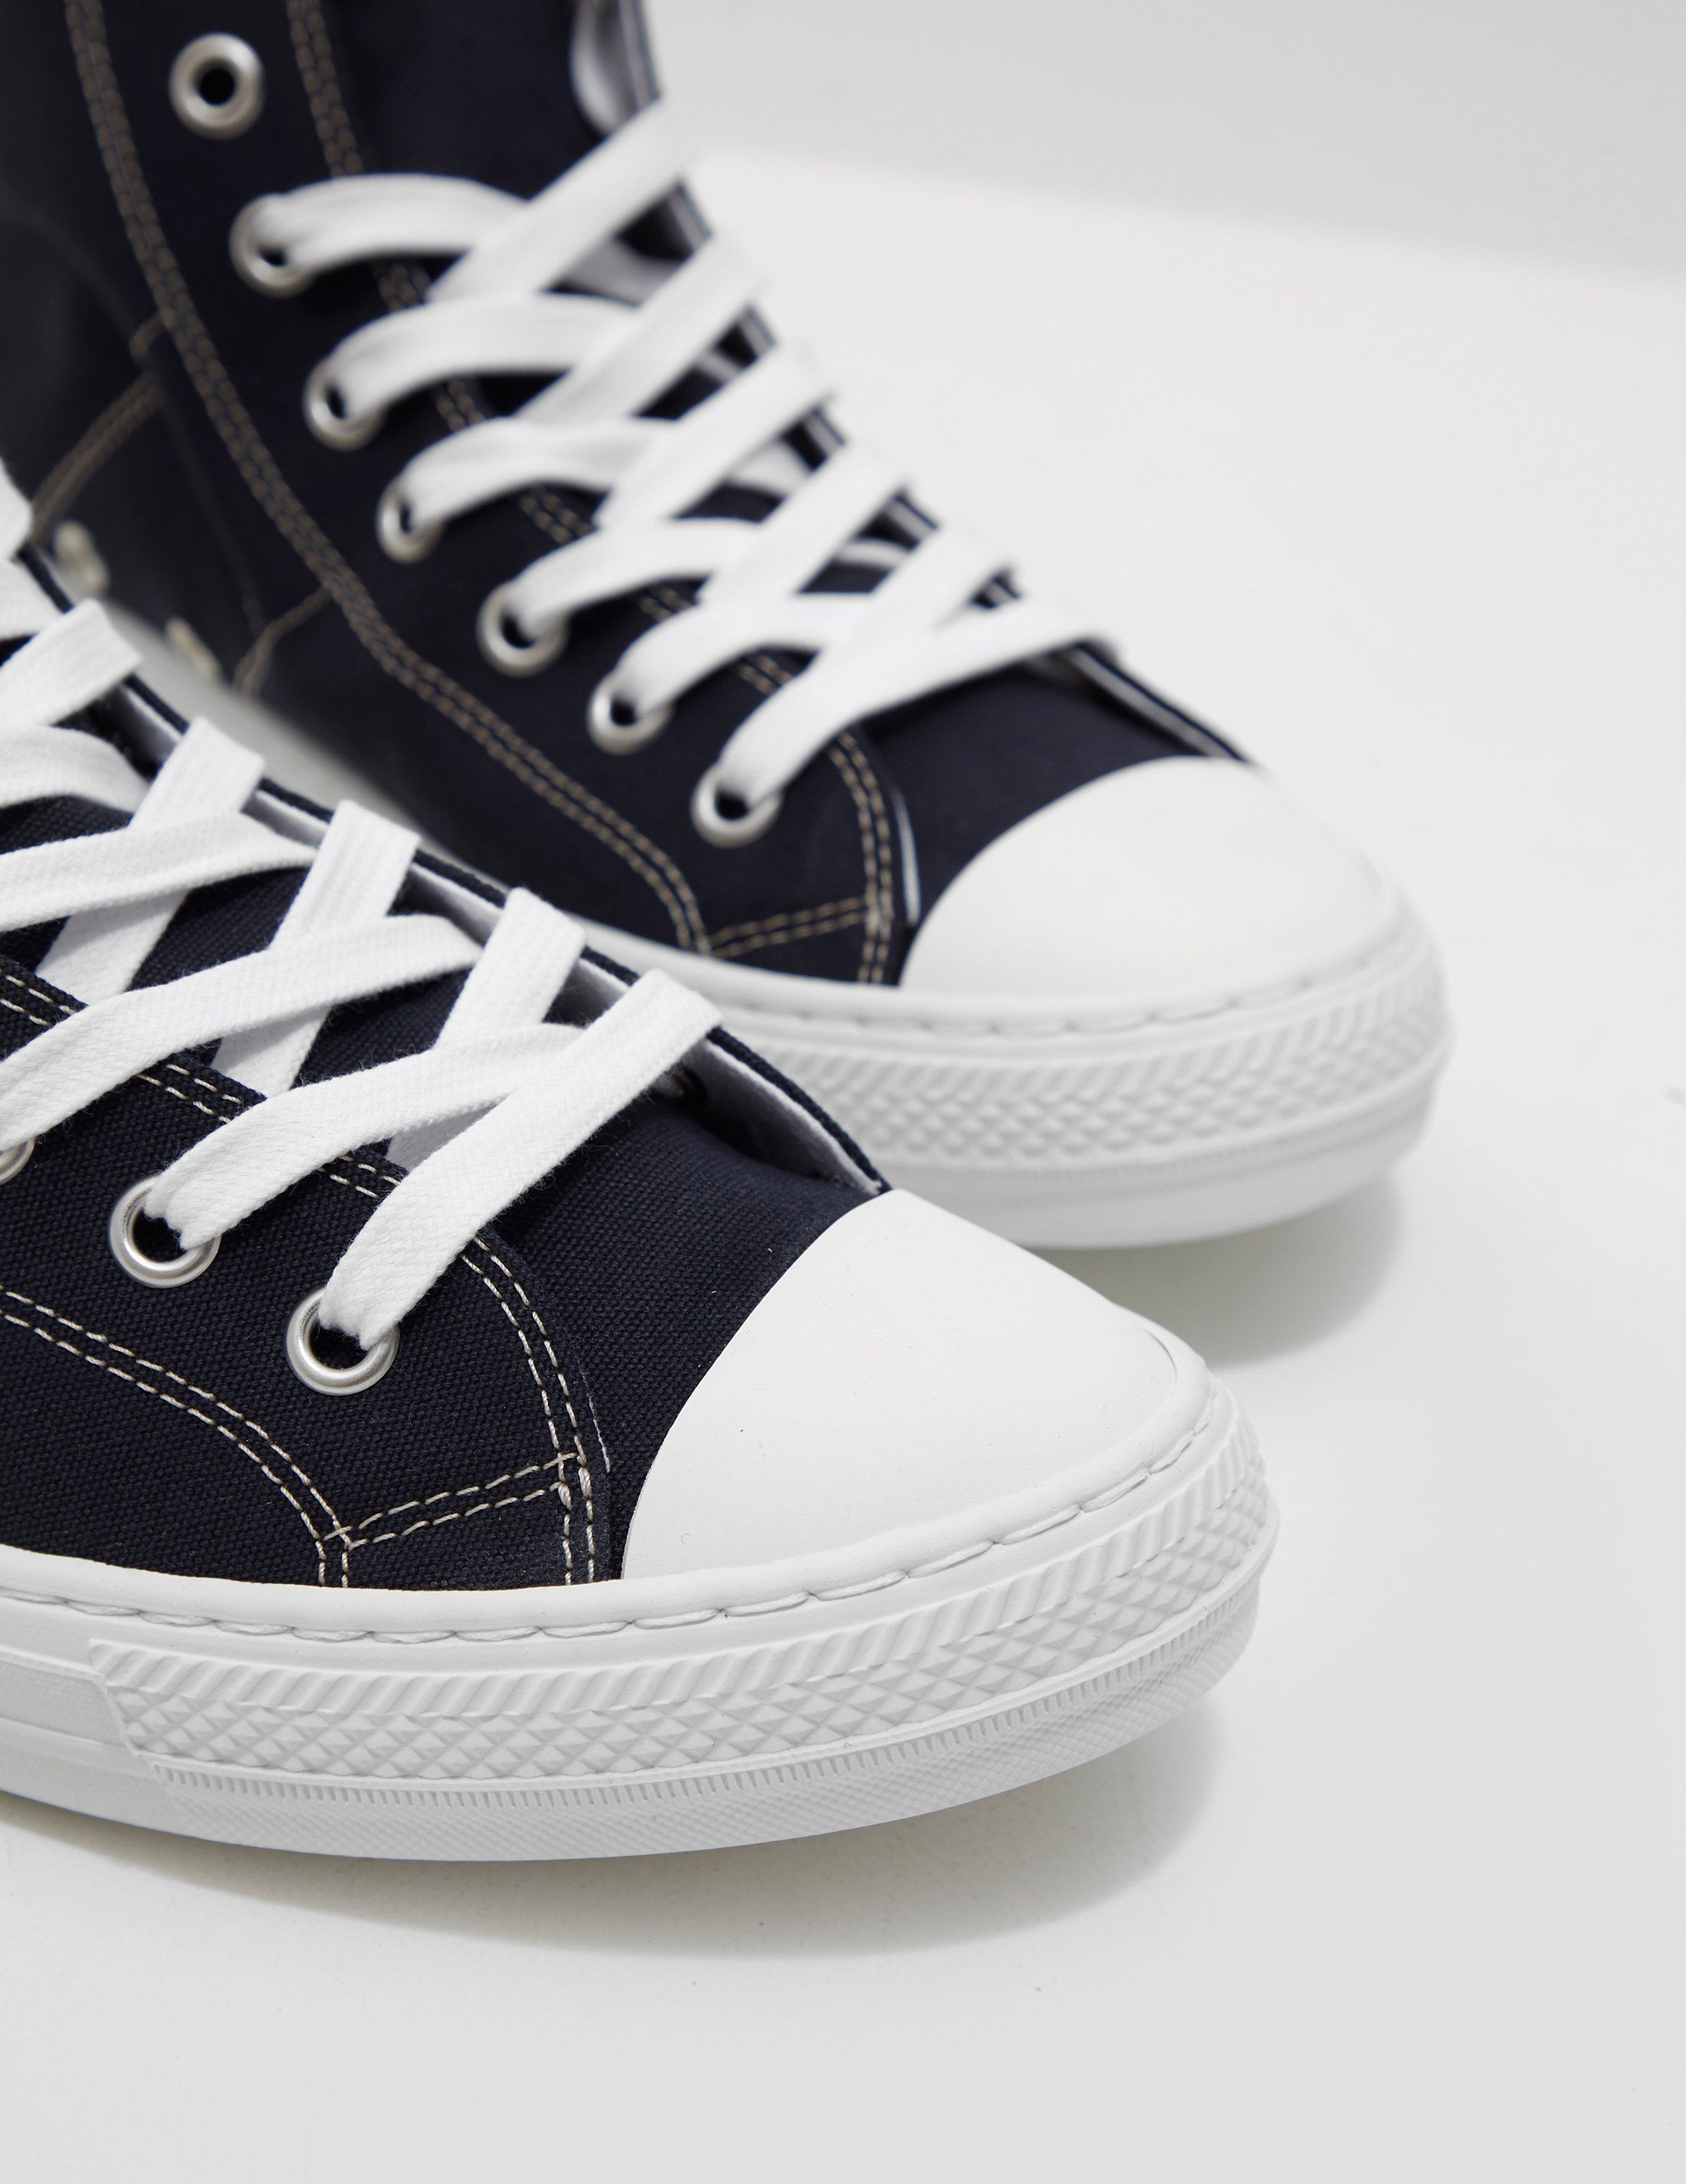 Maison Margiela High Top Trainers